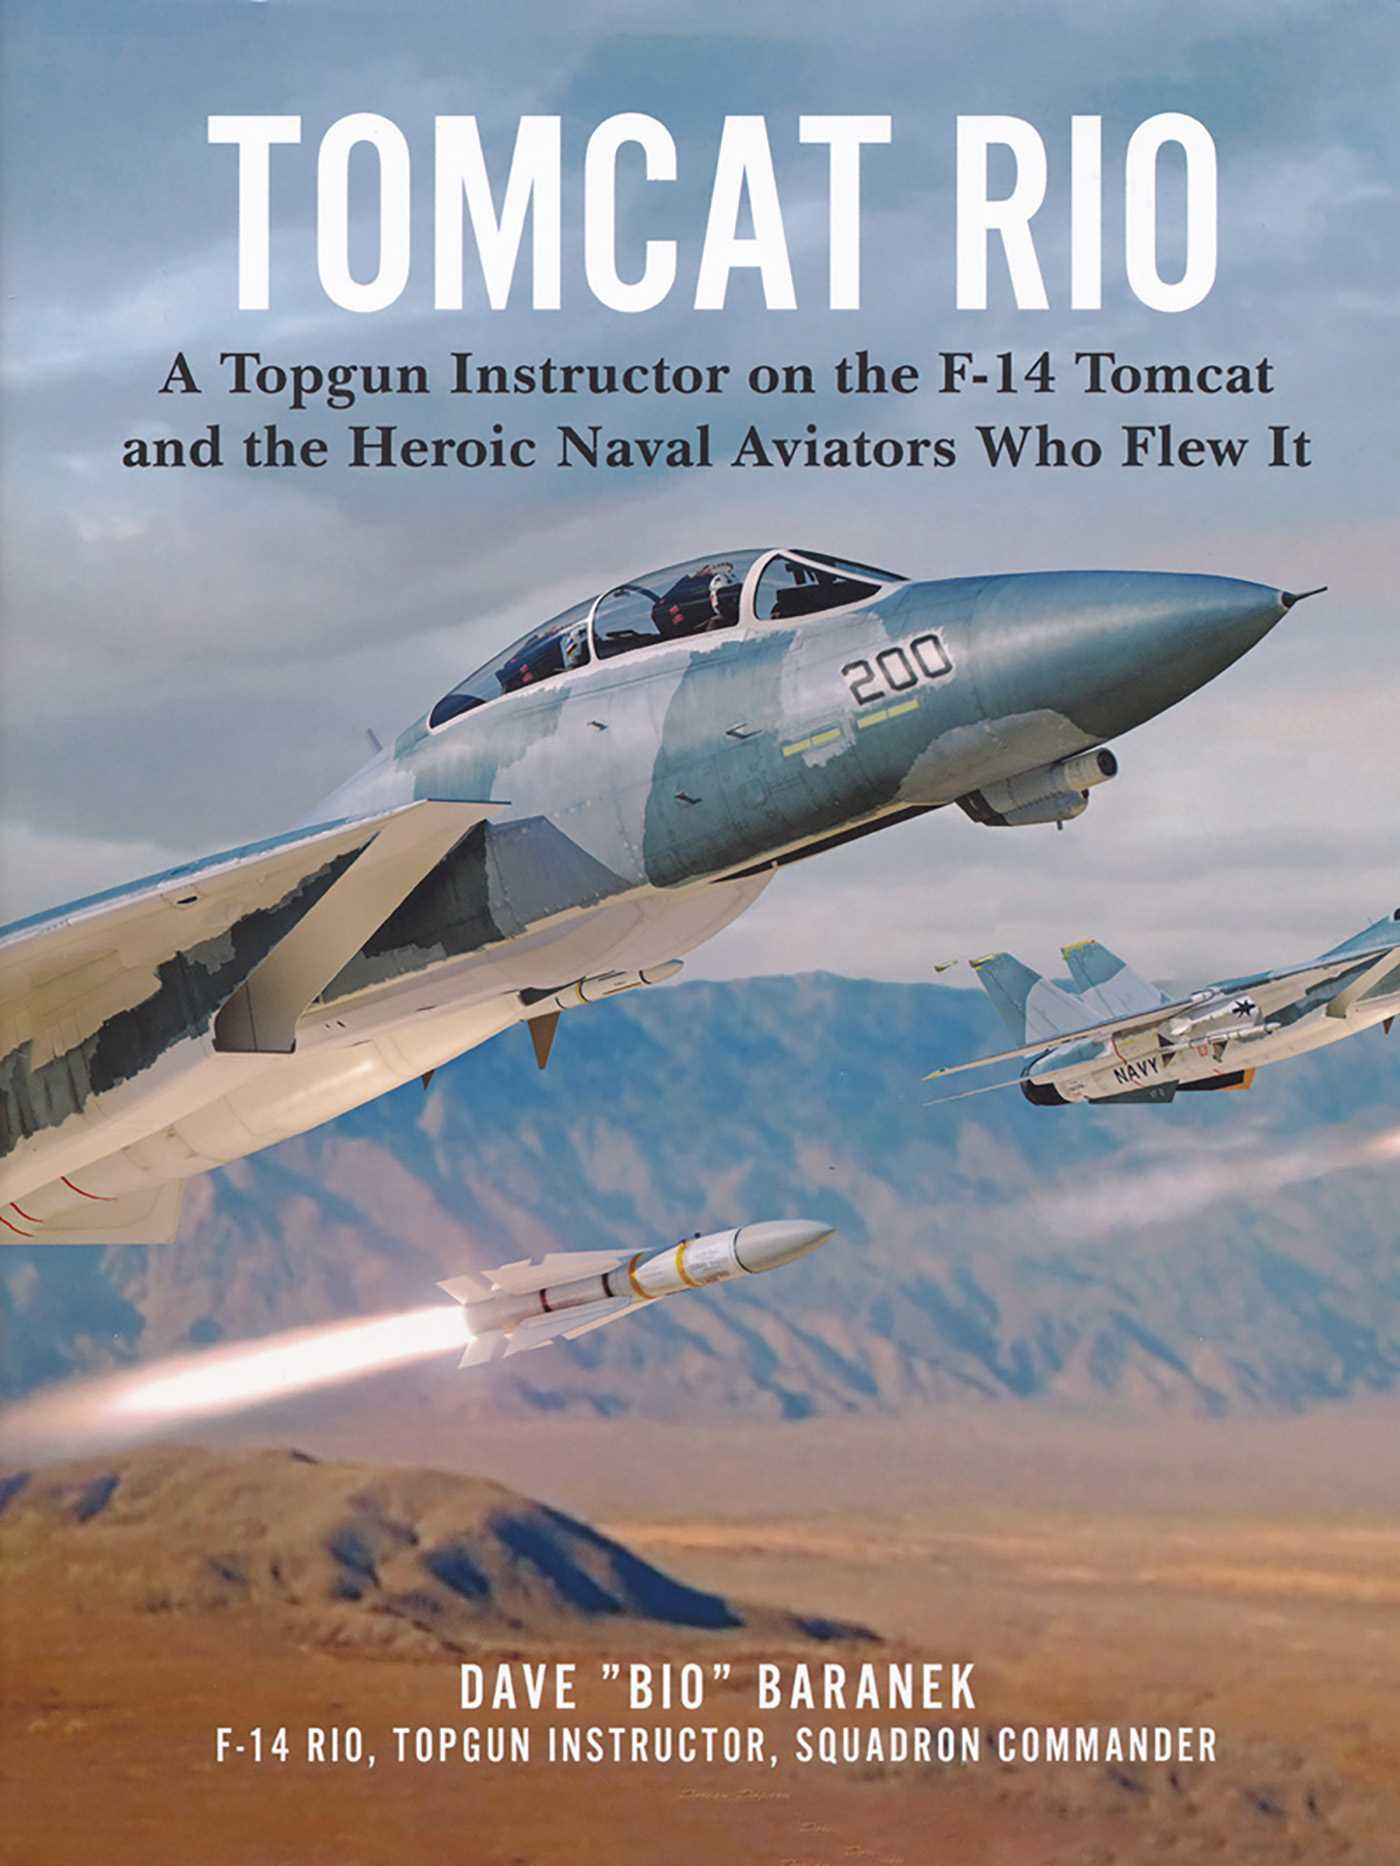 [PDF] [EPUB] Tomcat Rio: A Topgun Instructor on the F-14 Tomcat and the Heroic Naval Aviators Who Flew It Download by DAVE BARANEK